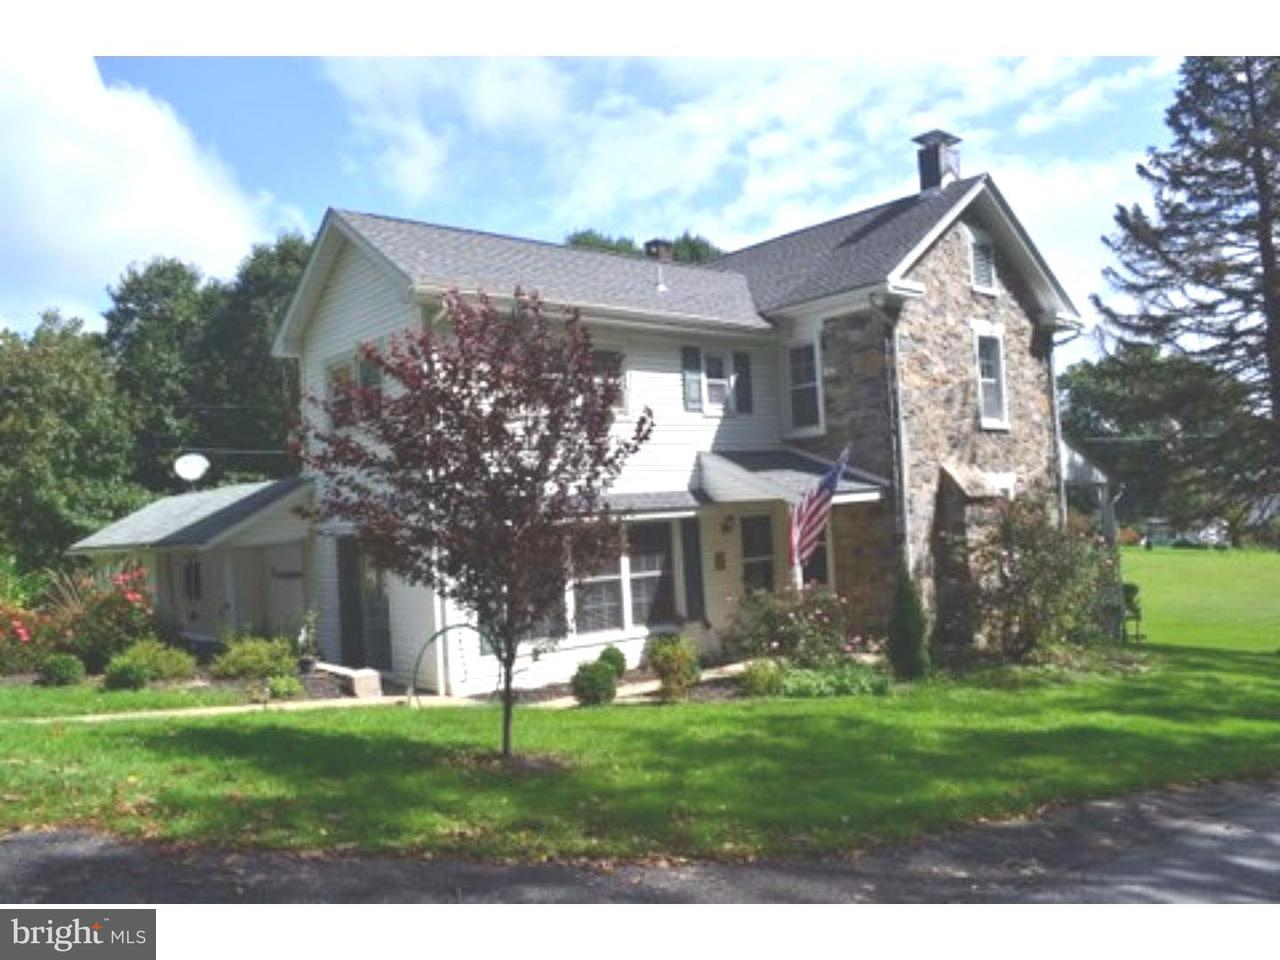 Single Family Home for Rent at 5000 OLEY TURNPIKE Road Reading, Pennsylvania 19606 United States